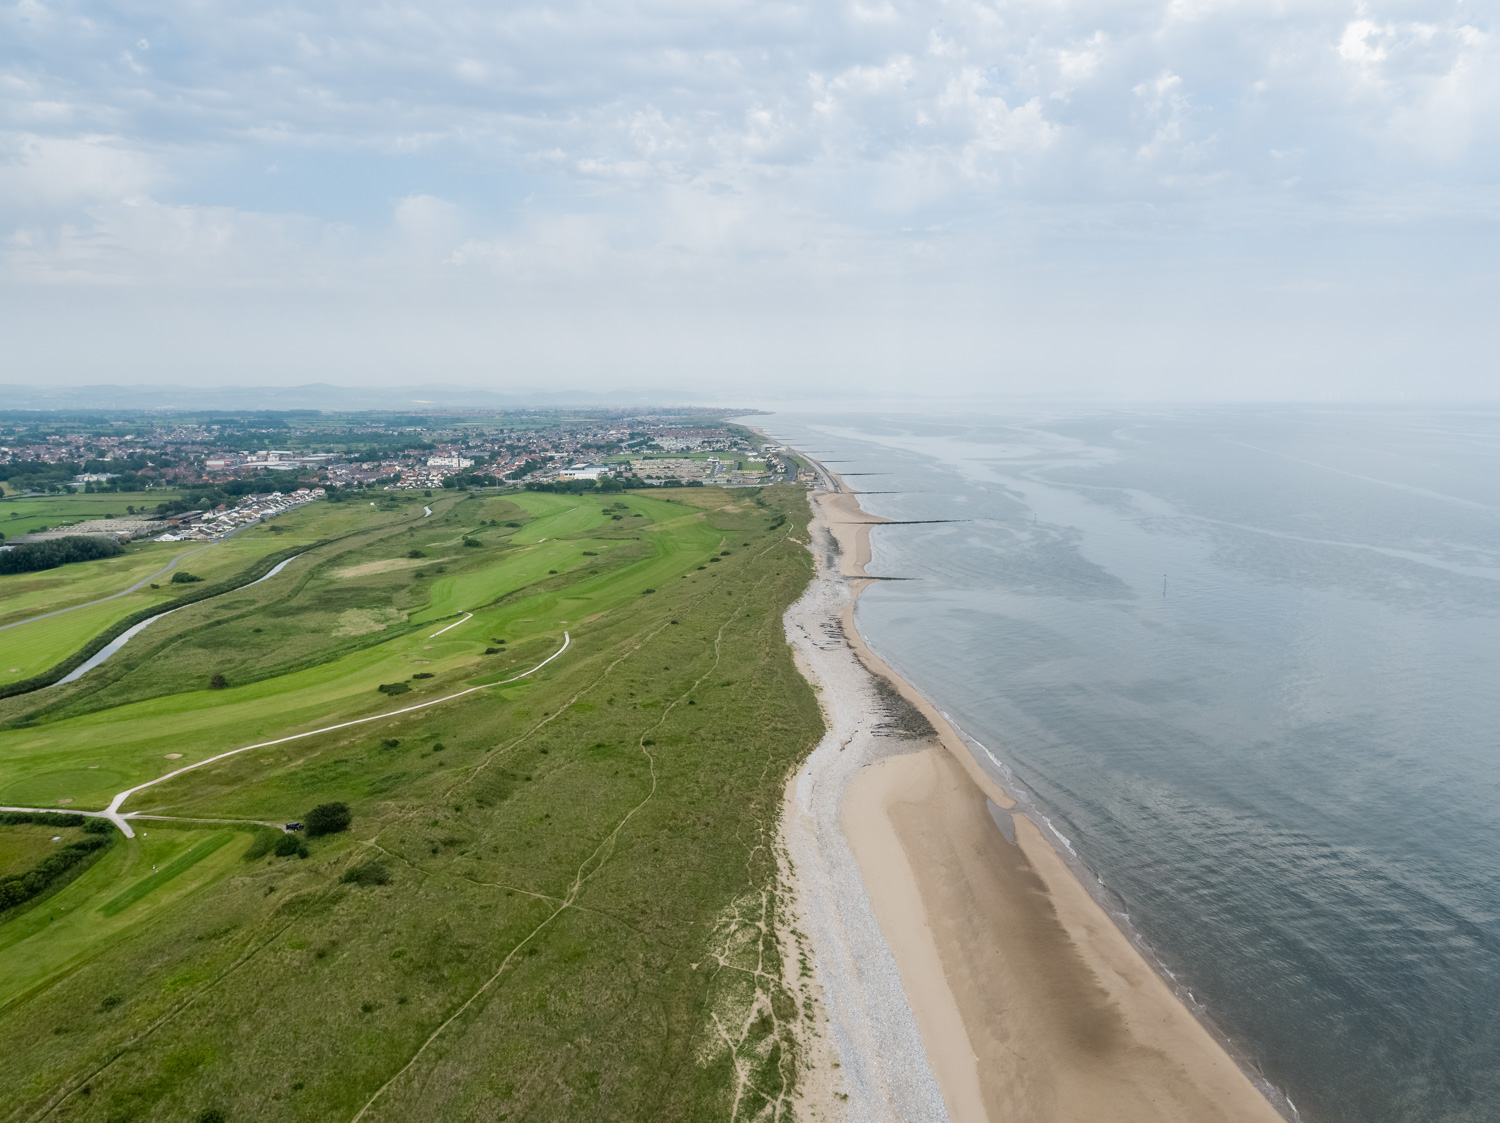 Drone_Filming_aerial_imagery_north_wales - Prestatyn_Golf_Club_Drone-0043.jpg